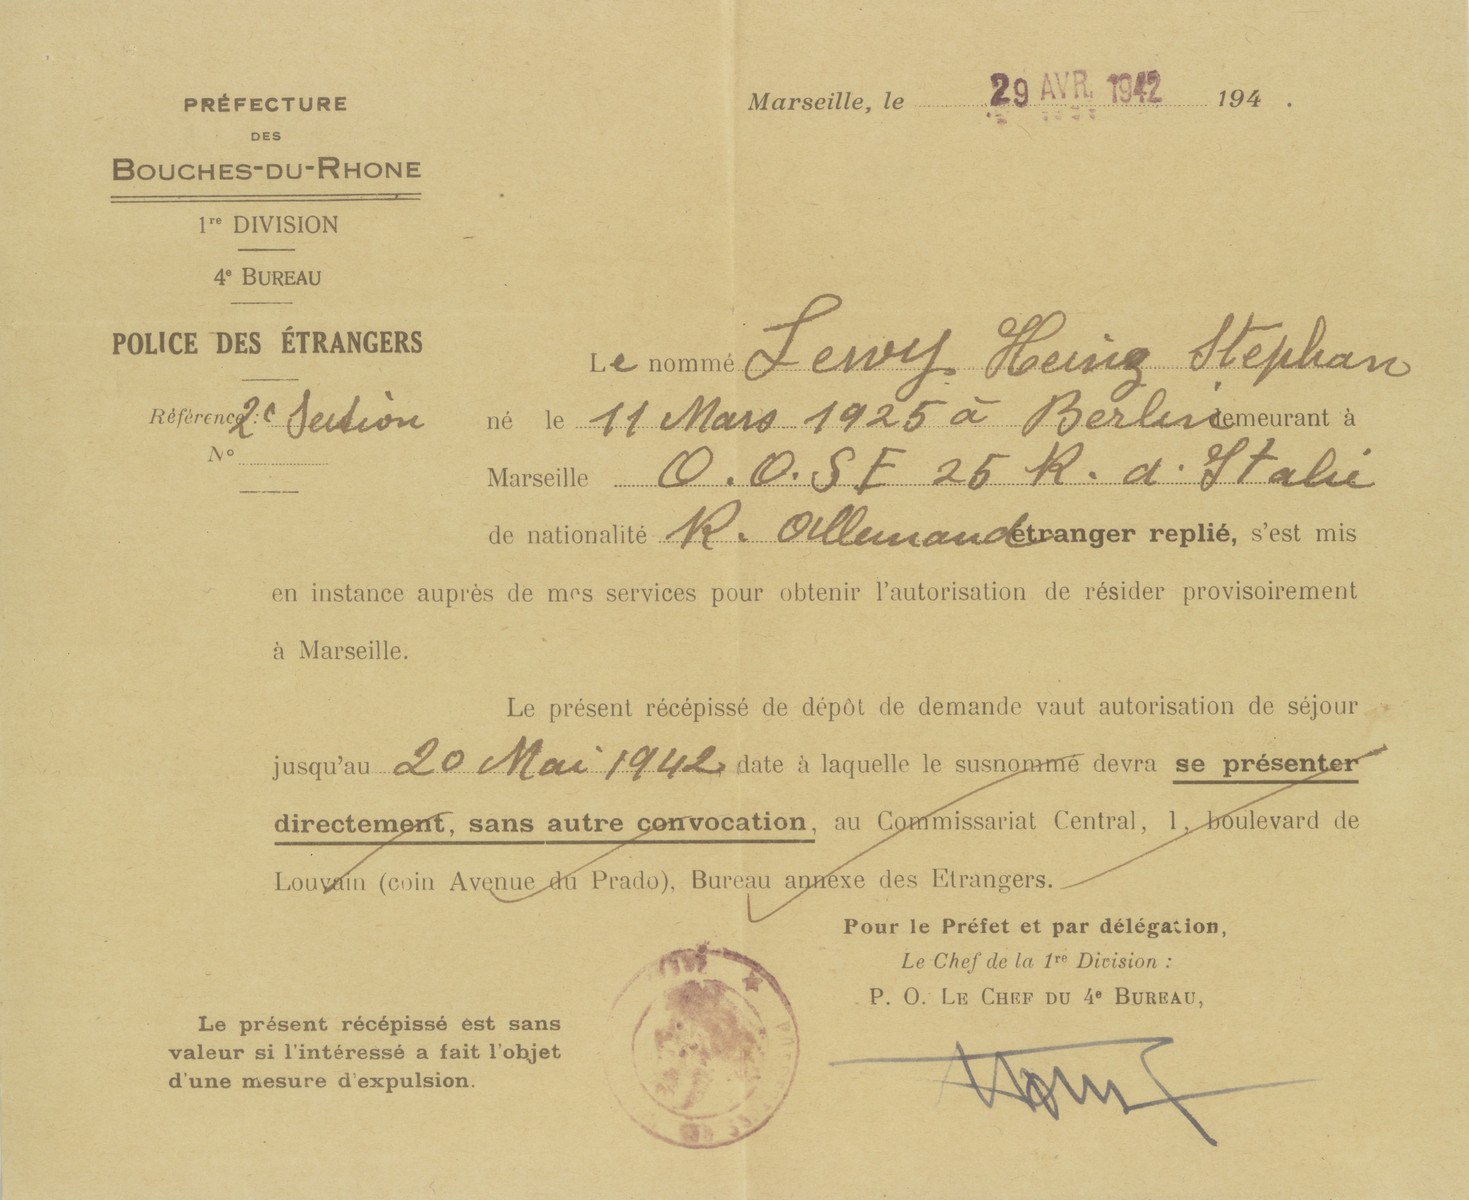 A temporary residence permit issued by the French police in Marseille to Heinz Stephan Lewy which allowed him to stay in Marseilles from April 20 to May 20, 1942.